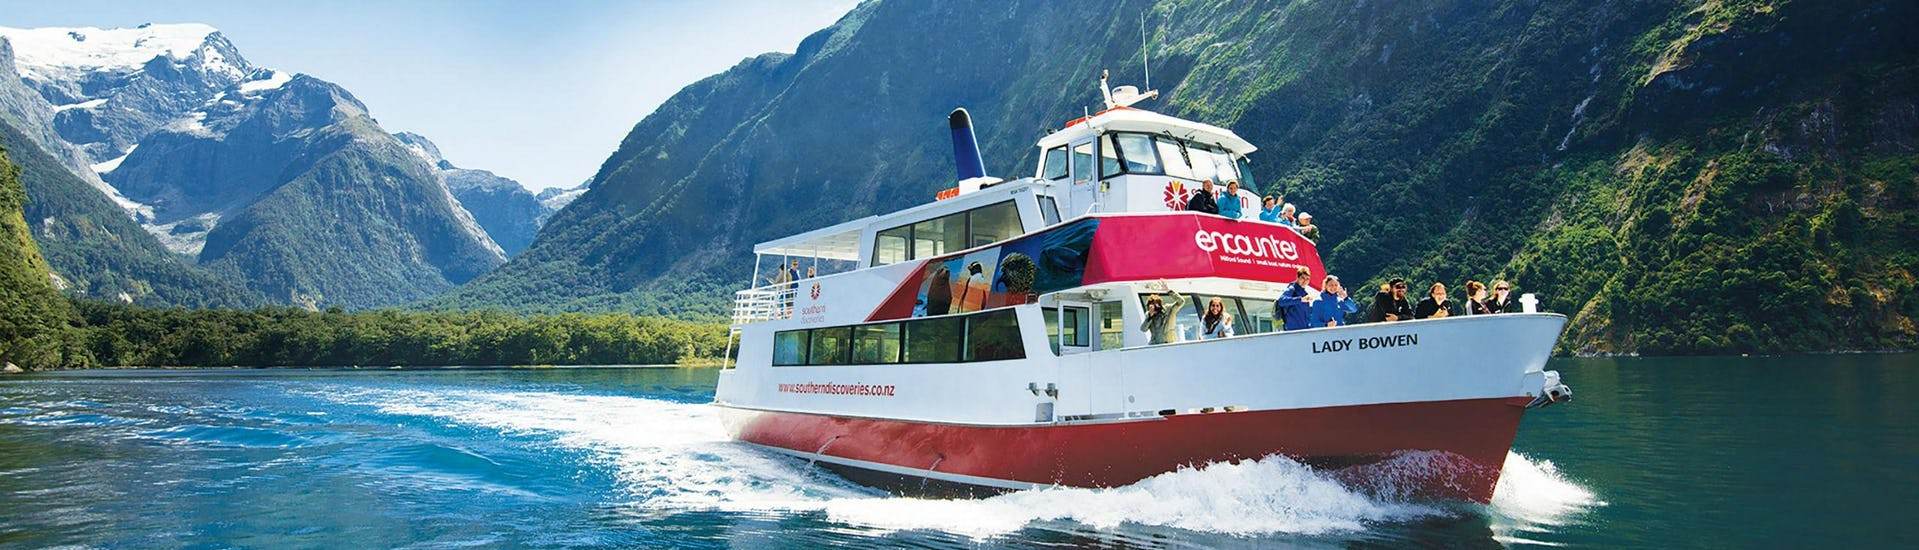 One of the Southern Discoveries ships is cruising along New Zealand's most famous fjord during the Encounter Nature Cruise in Milford Sound - Winter.